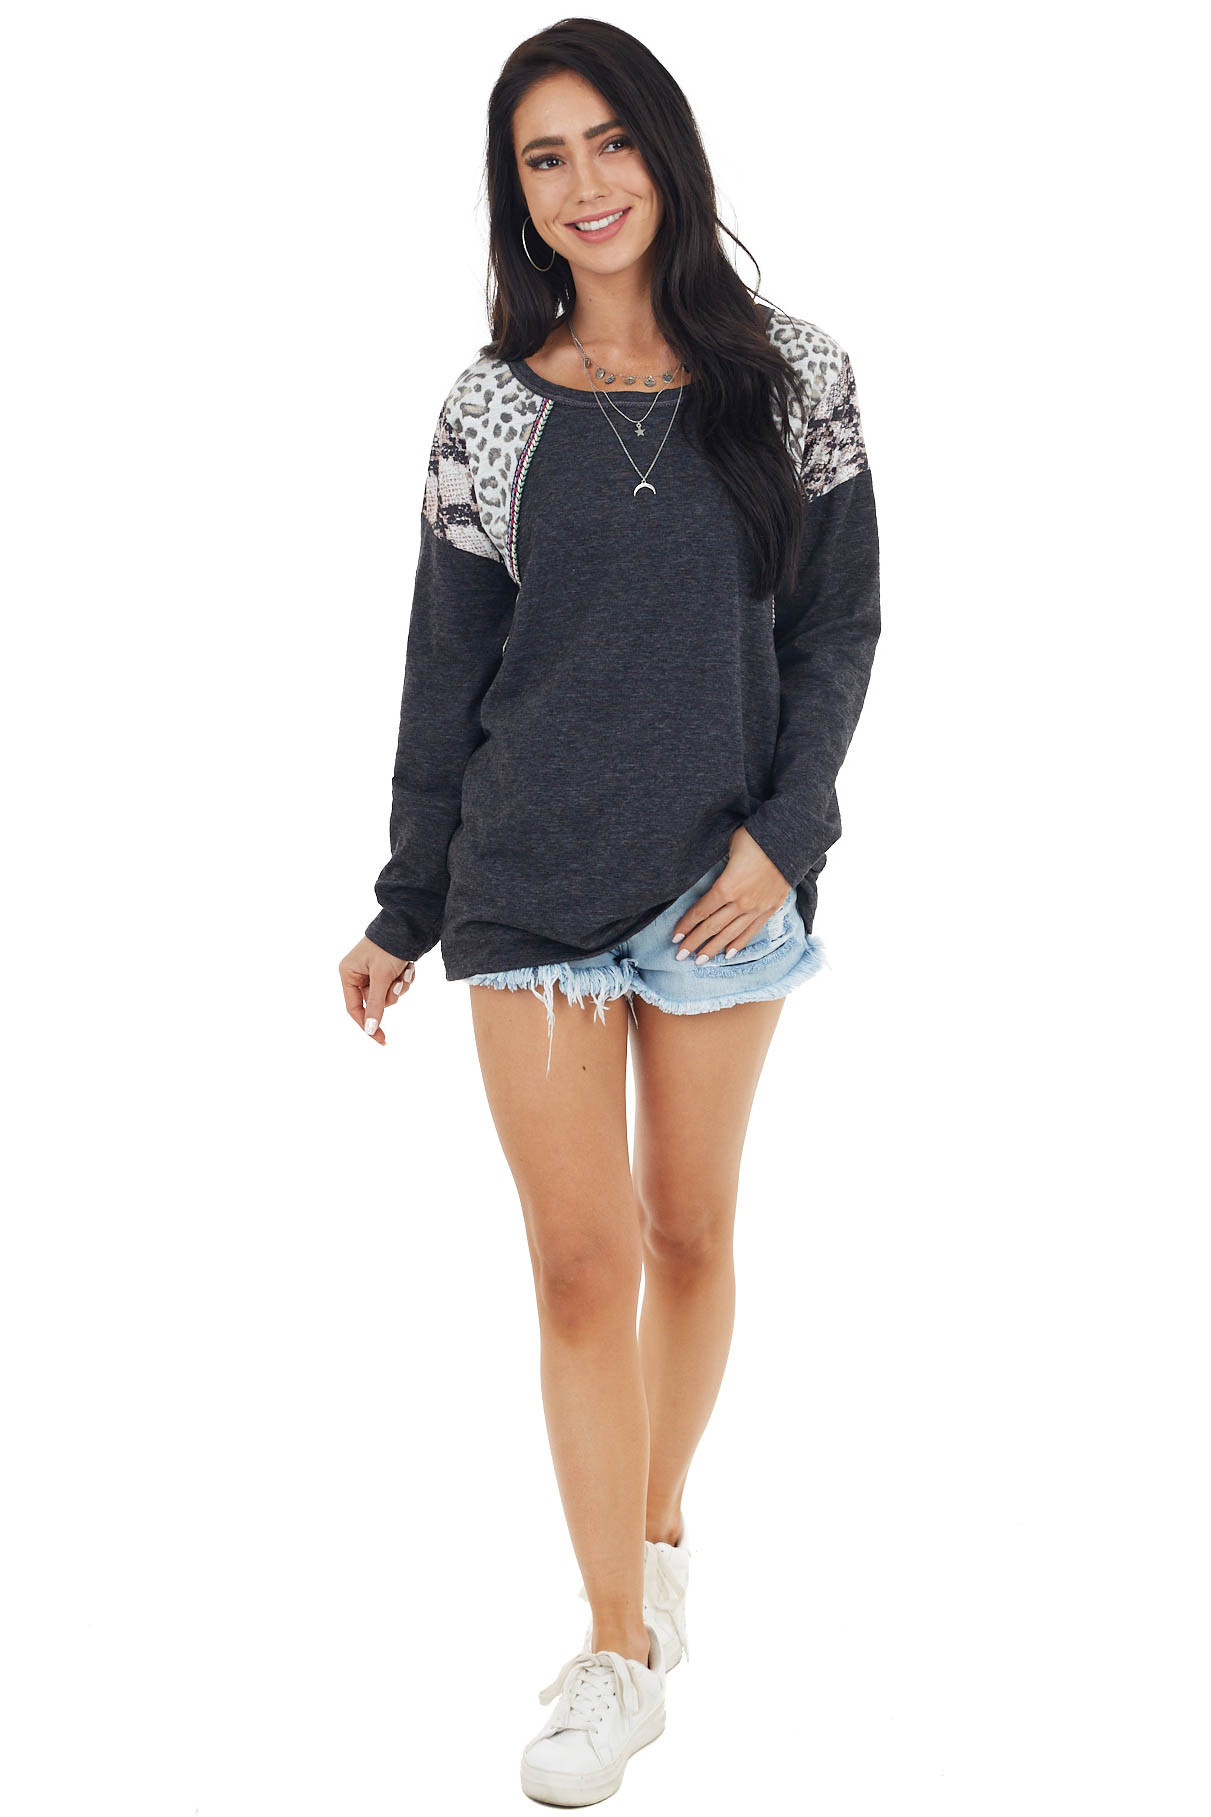 Heathered Black Long Sleeve Top with Leopard and Snake Print